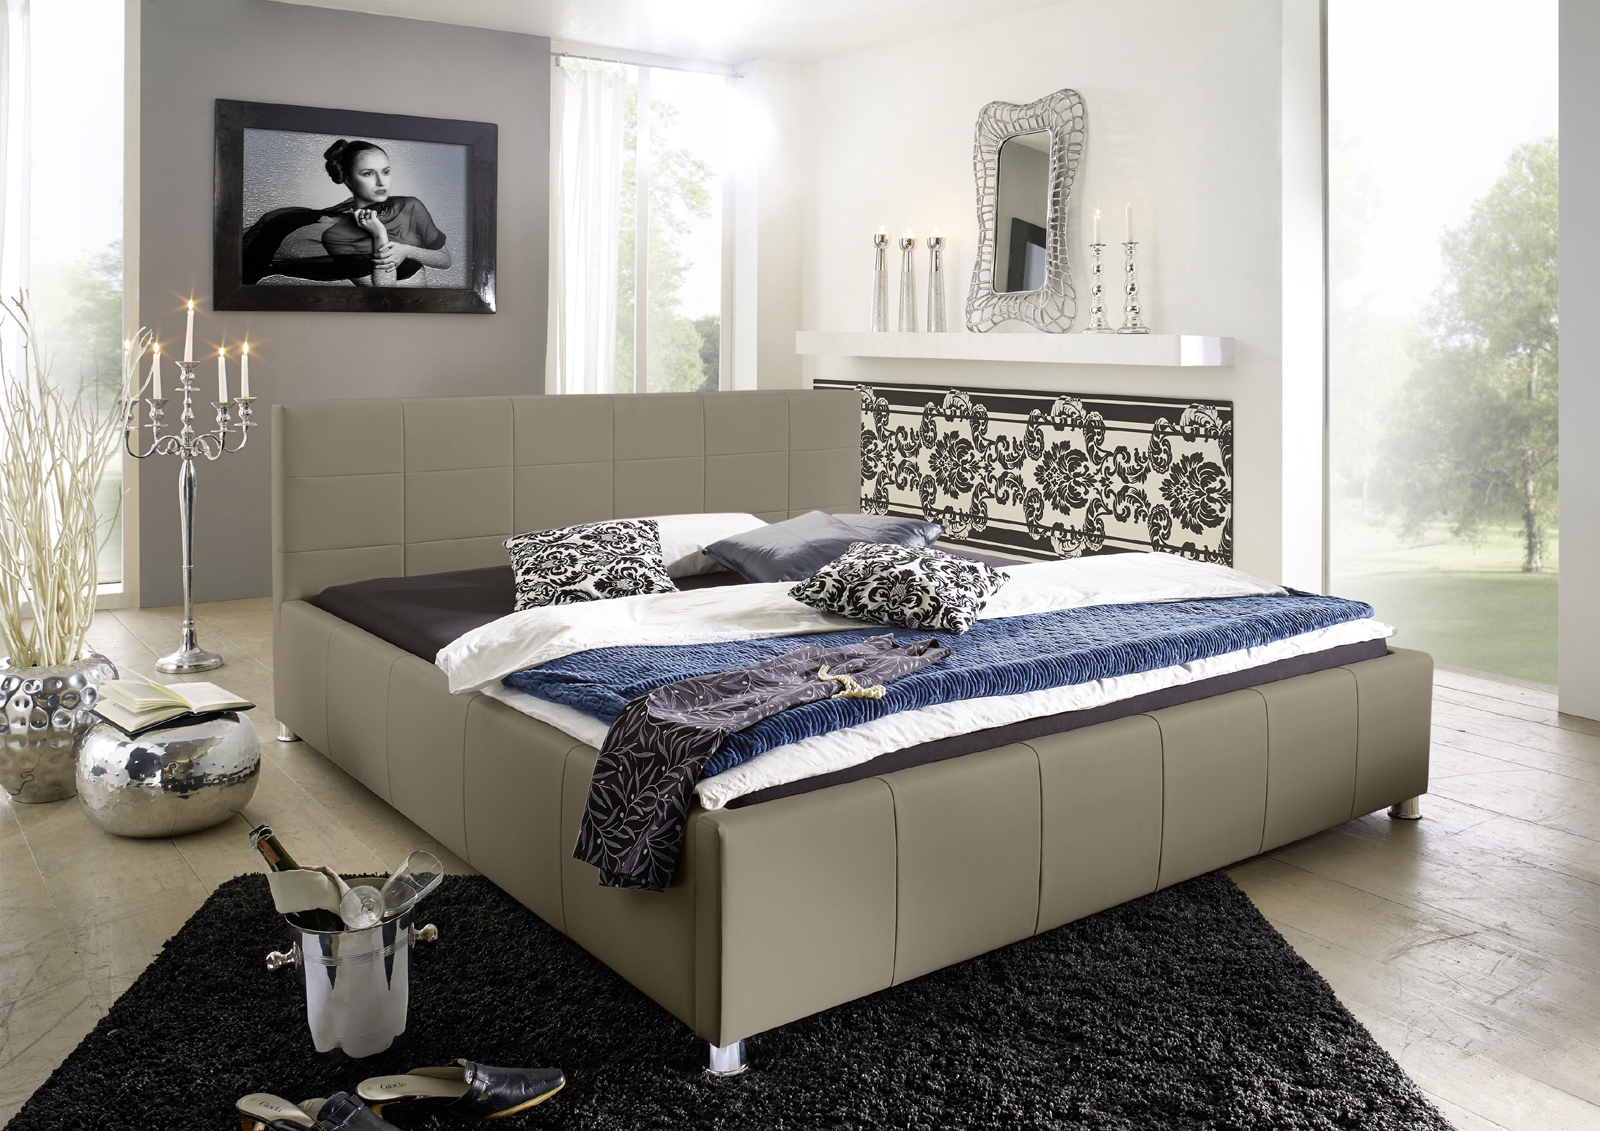 sam design bett 140 x 200 cm muddy kira g nstig. Black Bedroom Furniture Sets. Home Design Ideas